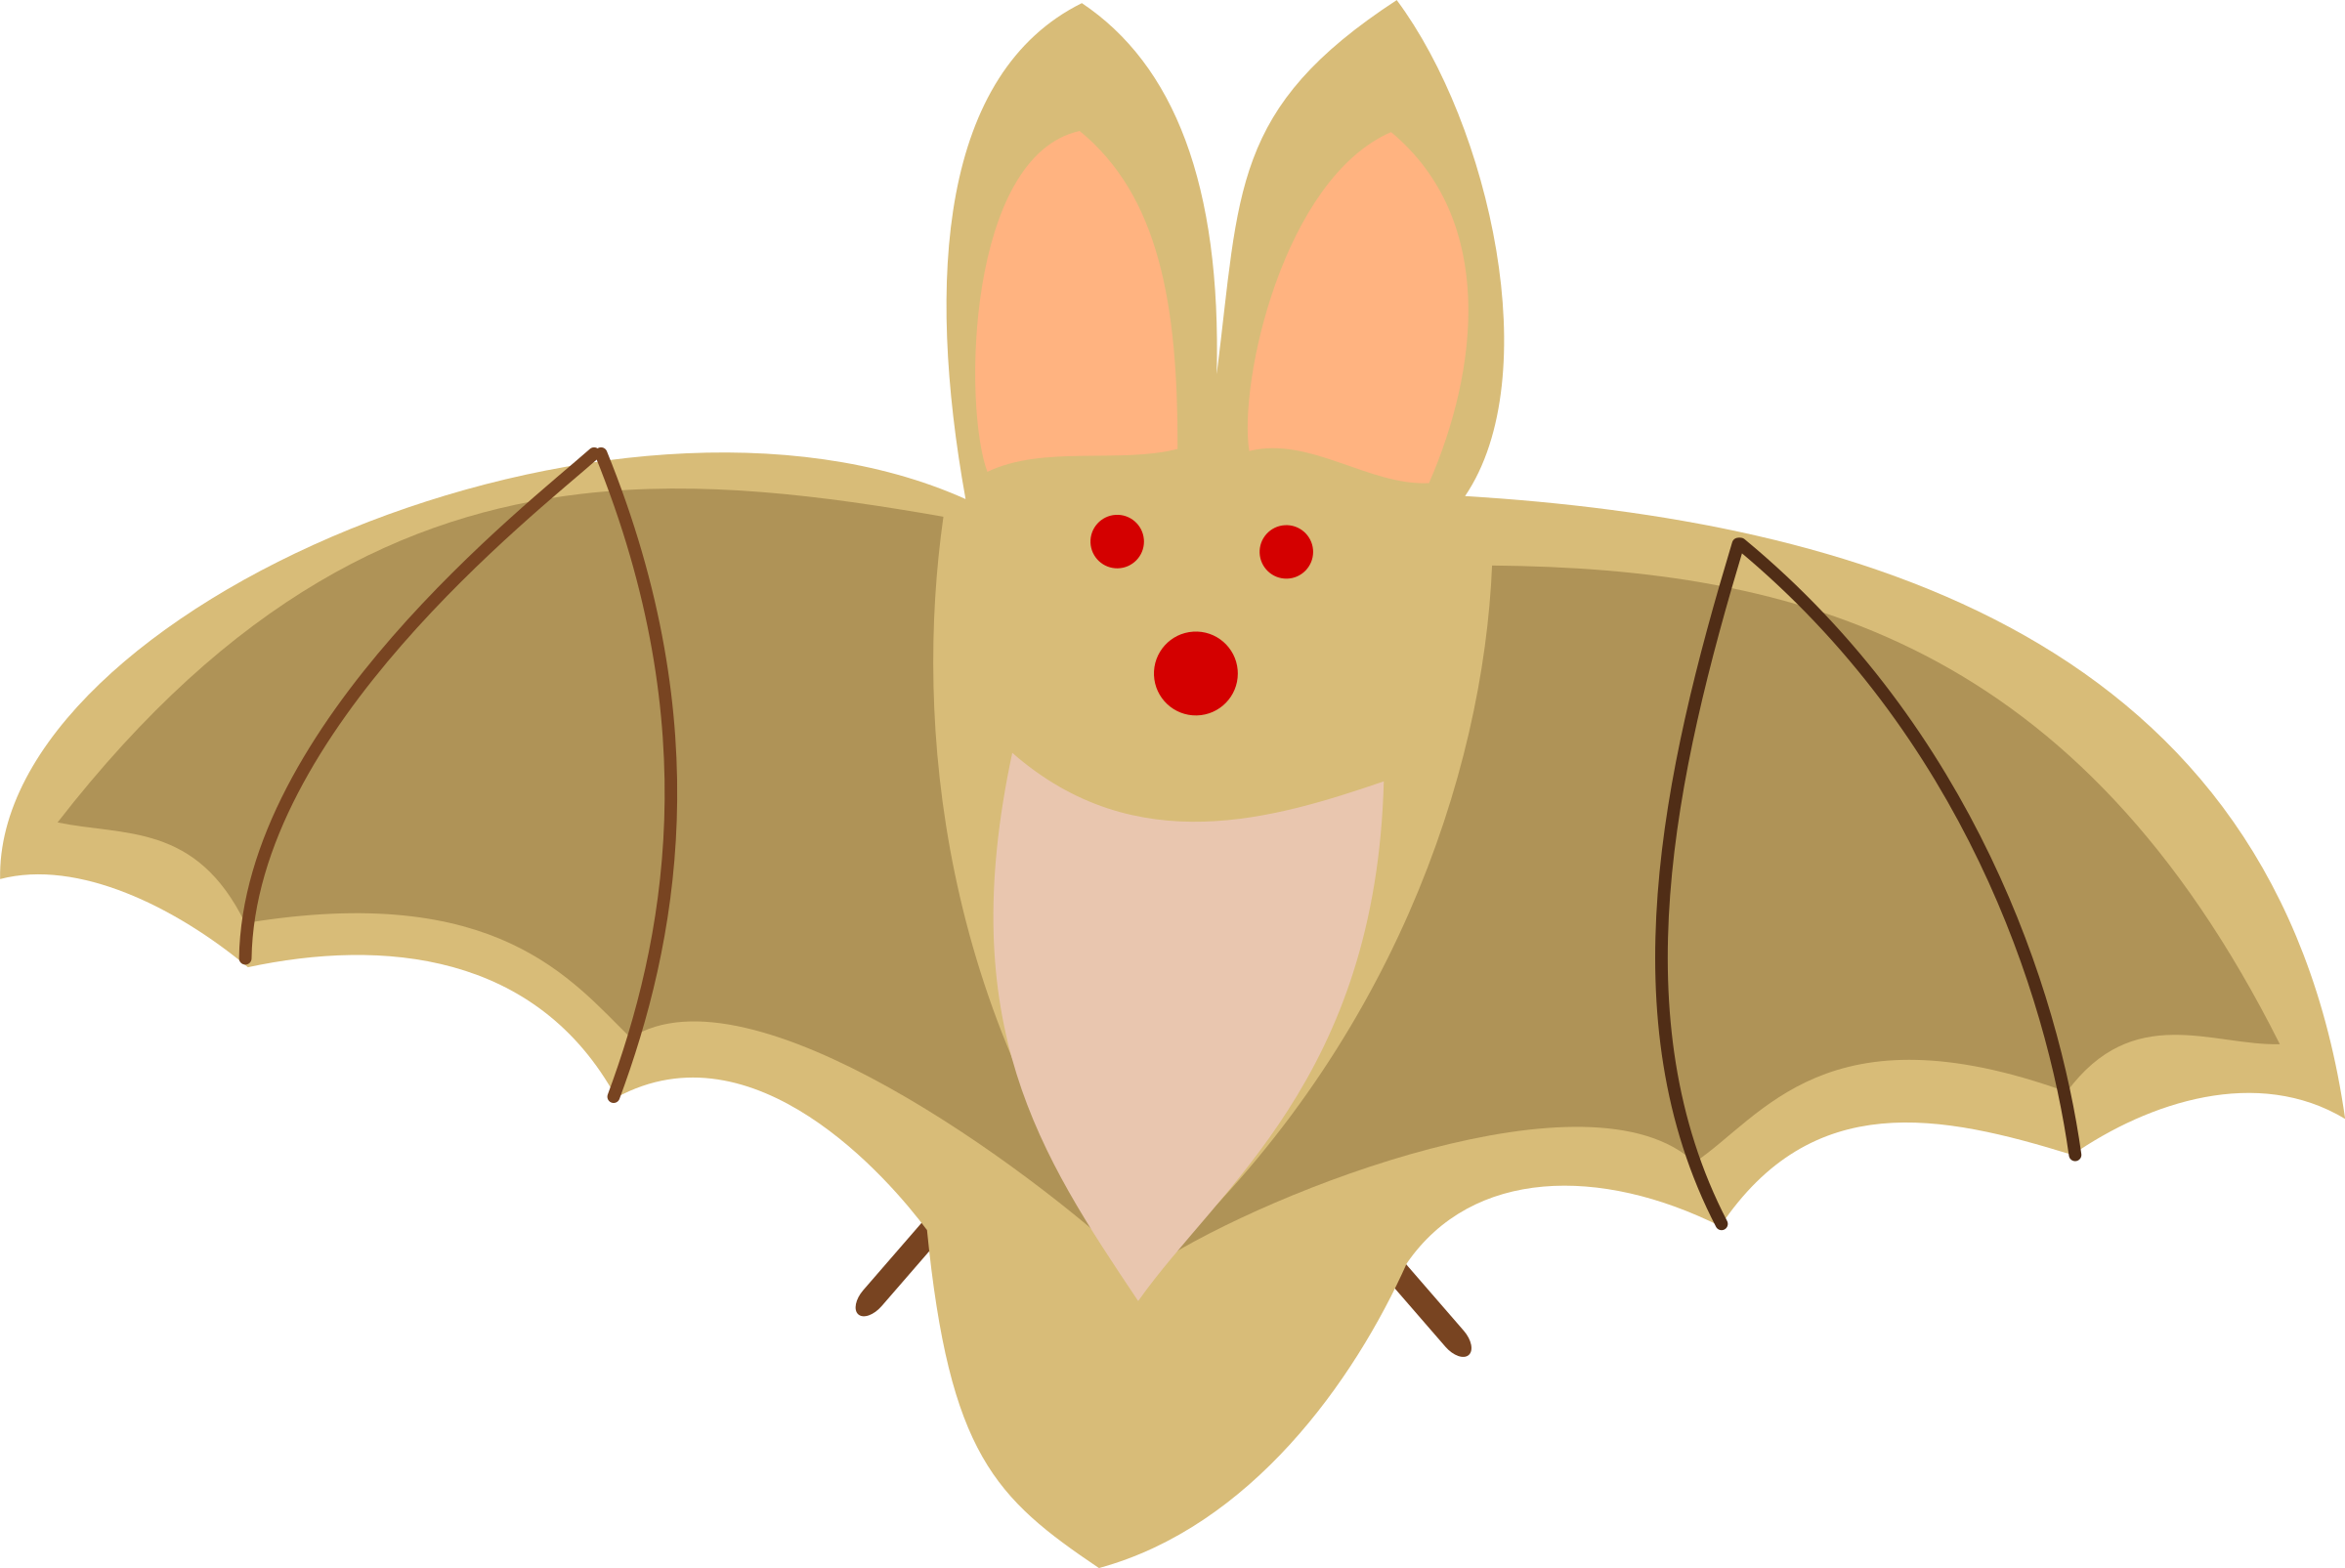 image stock Bat free on dumielauxepices. Bats clipart orange.